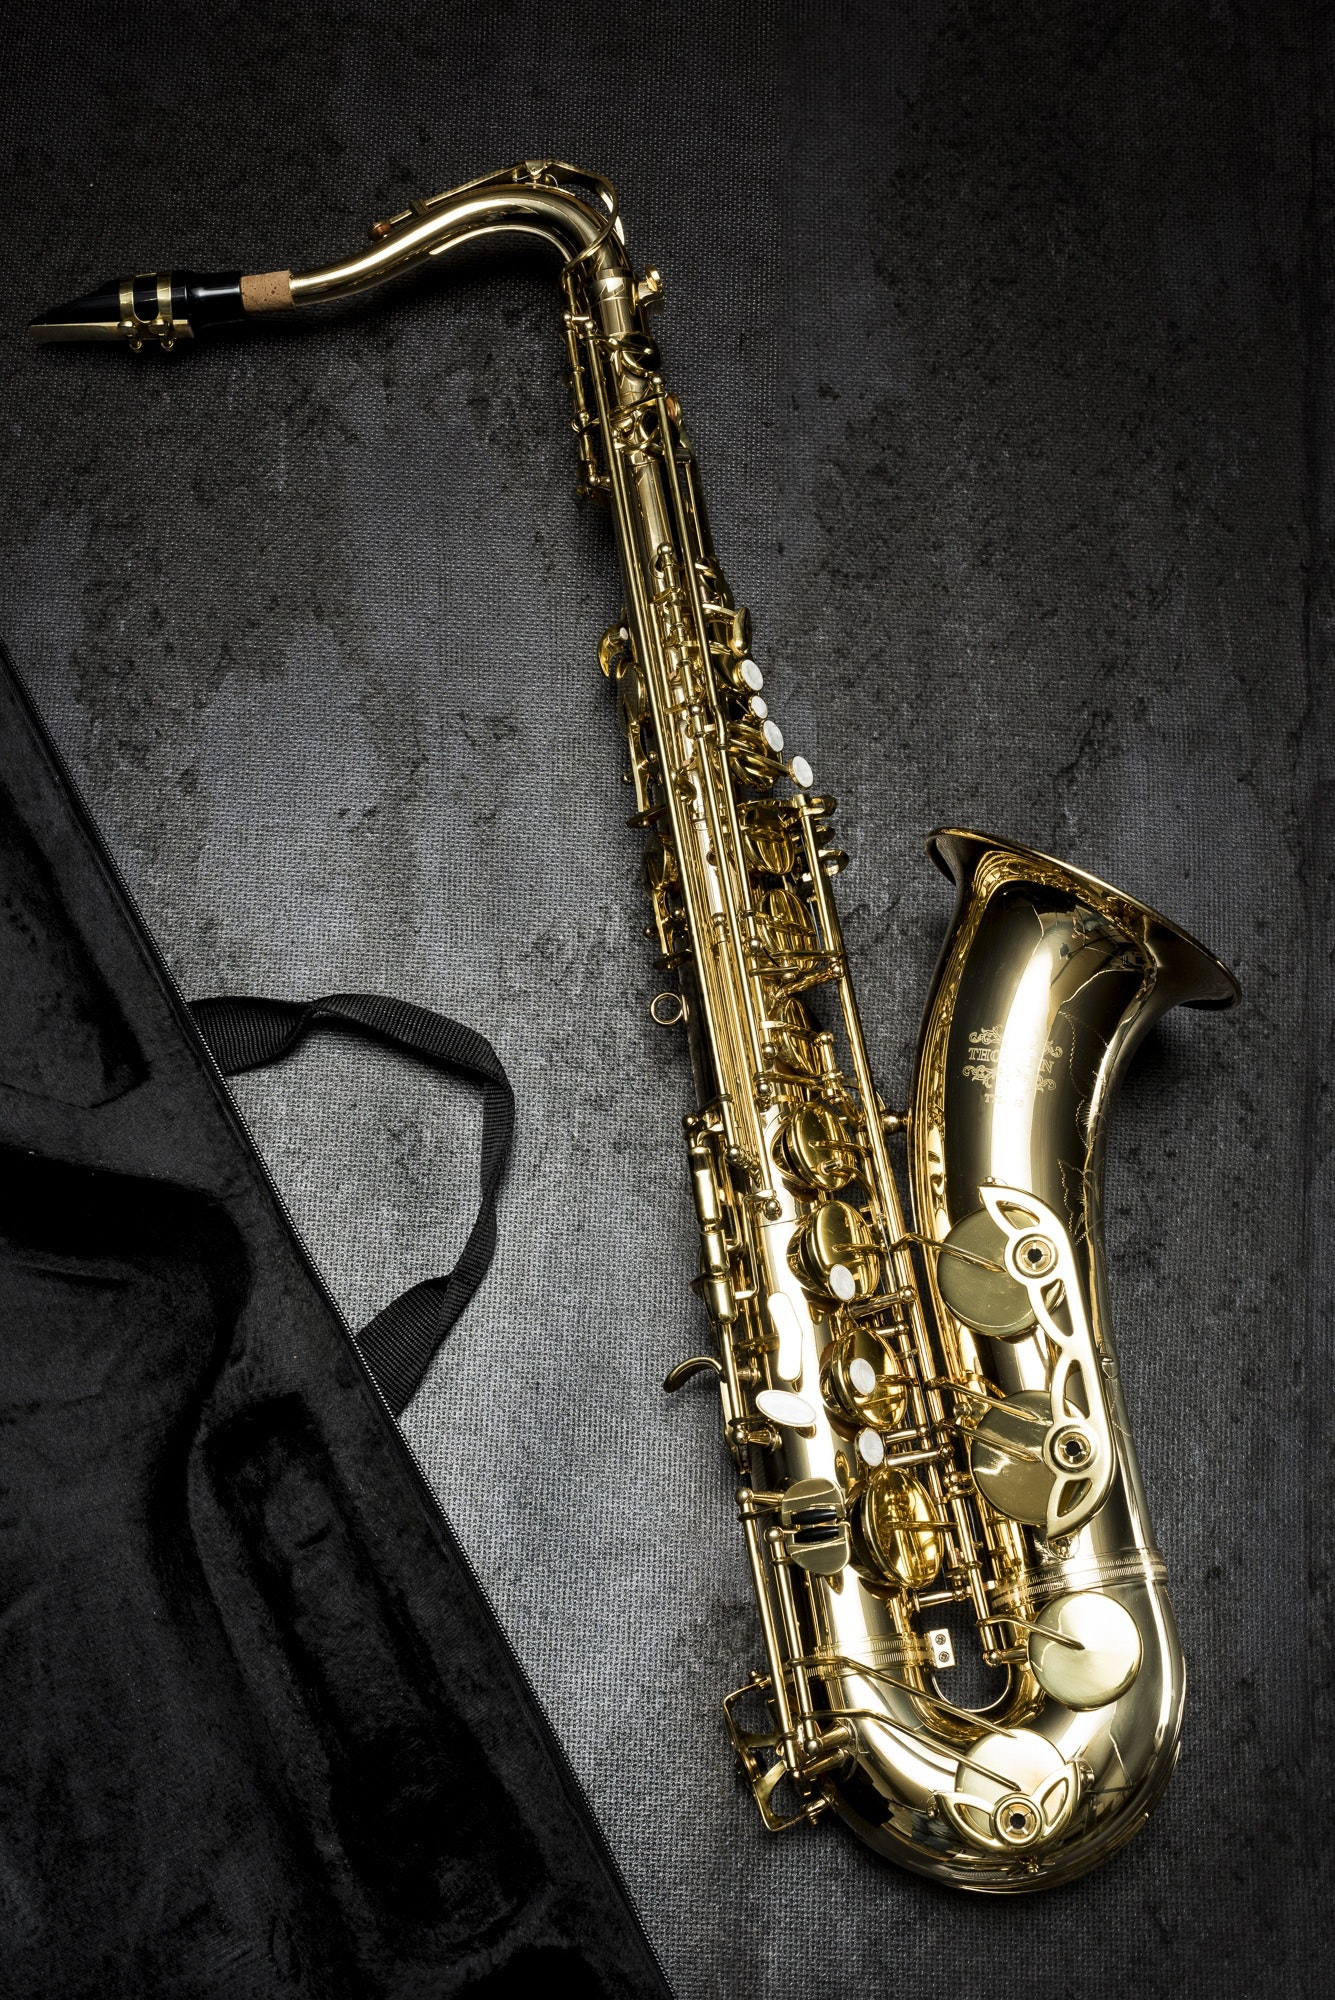 /site/assets/files/1204/jazz-musikinstrument-saxophon-164936.jpg